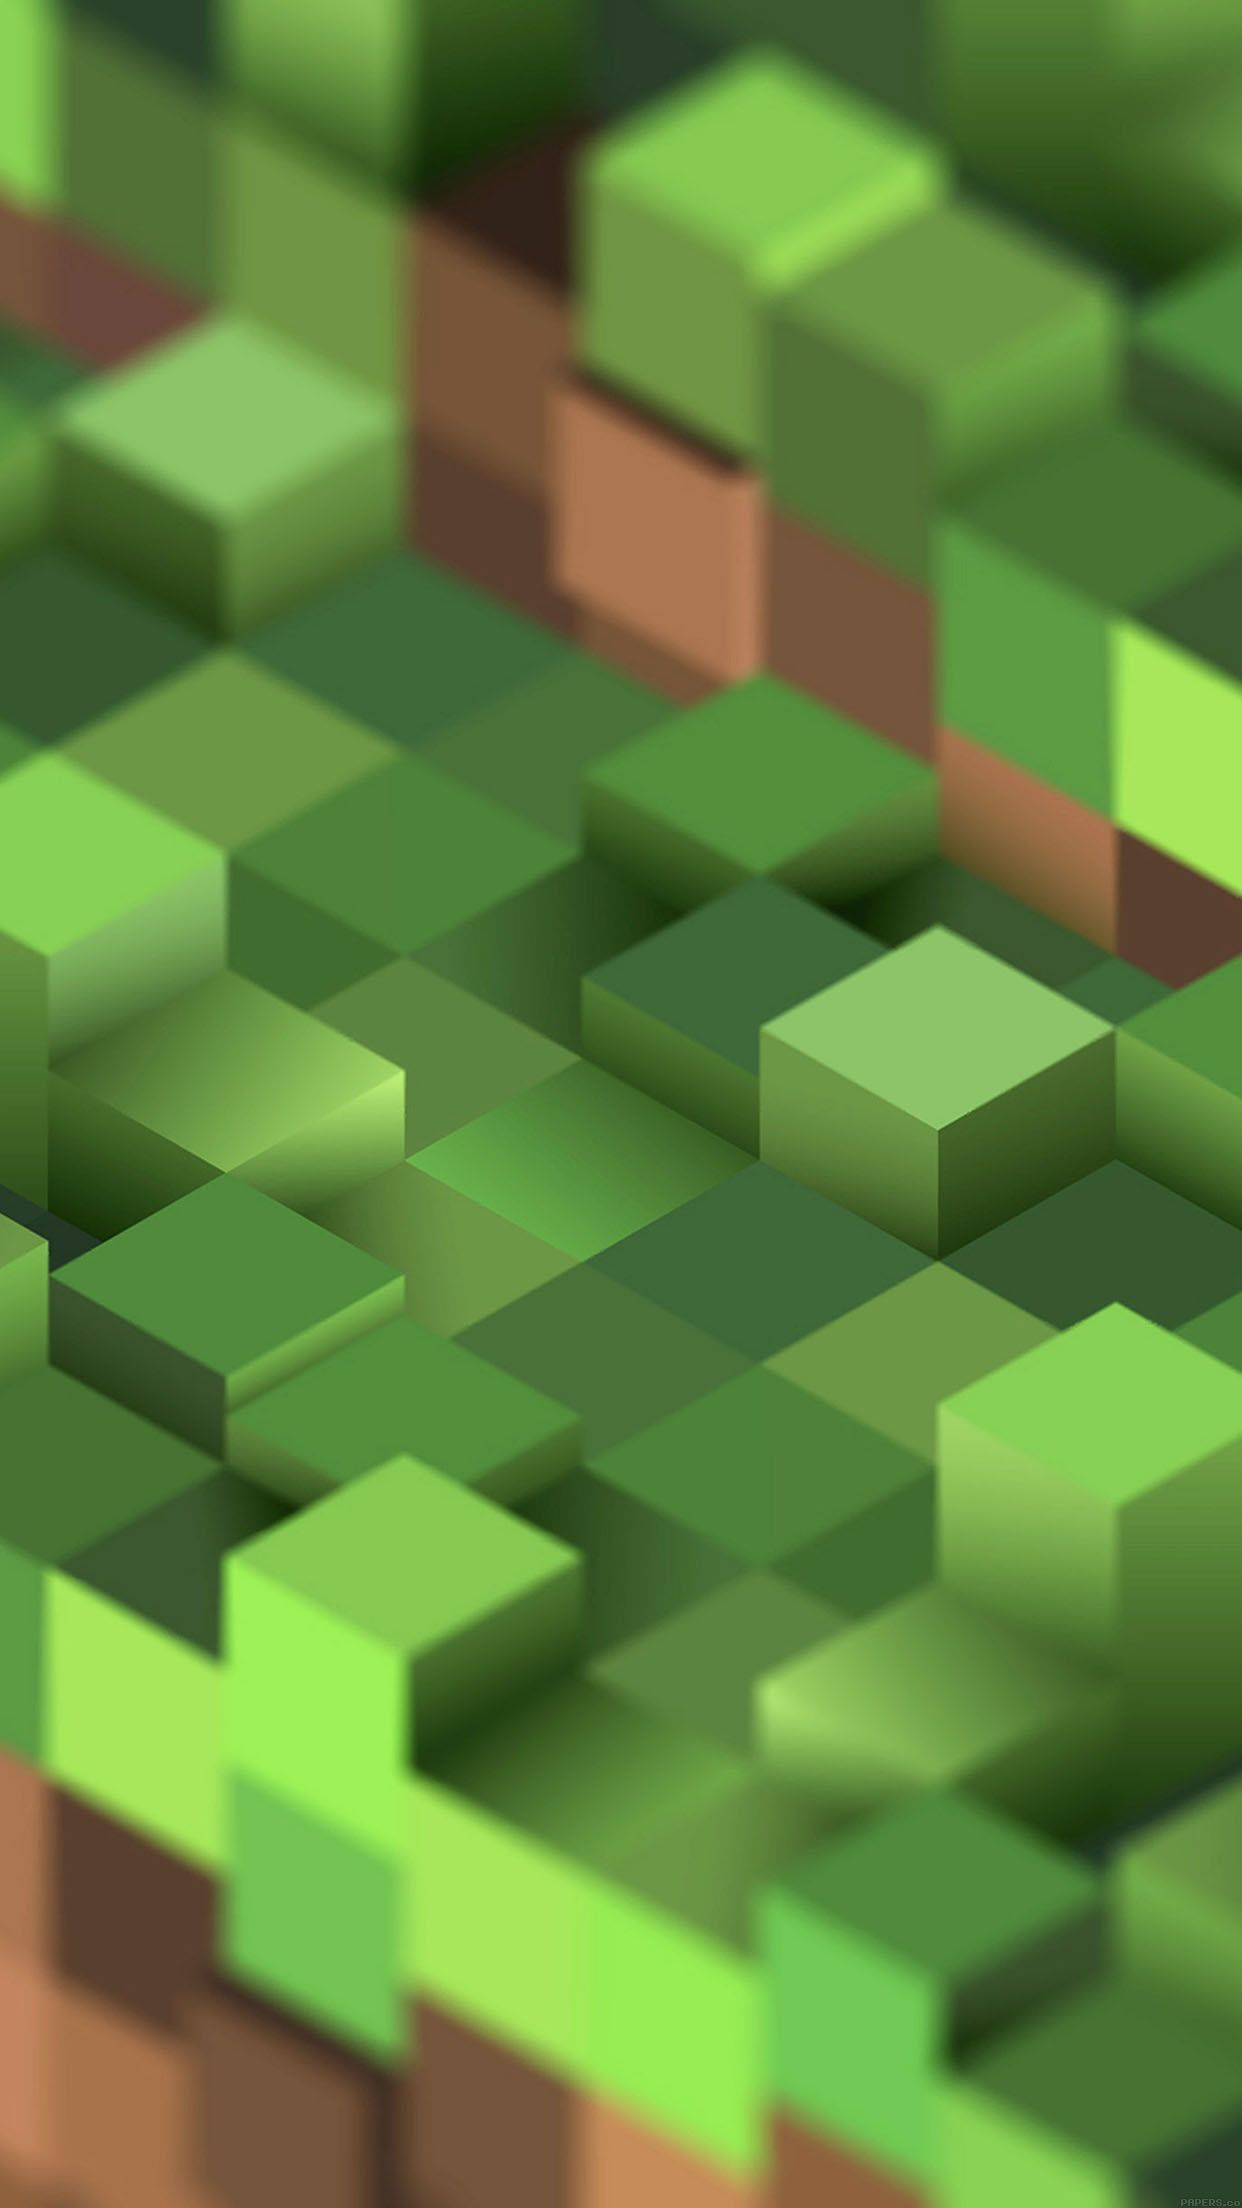 Minecraft Iphone Wallpapers Top Free Minecraft Iphone